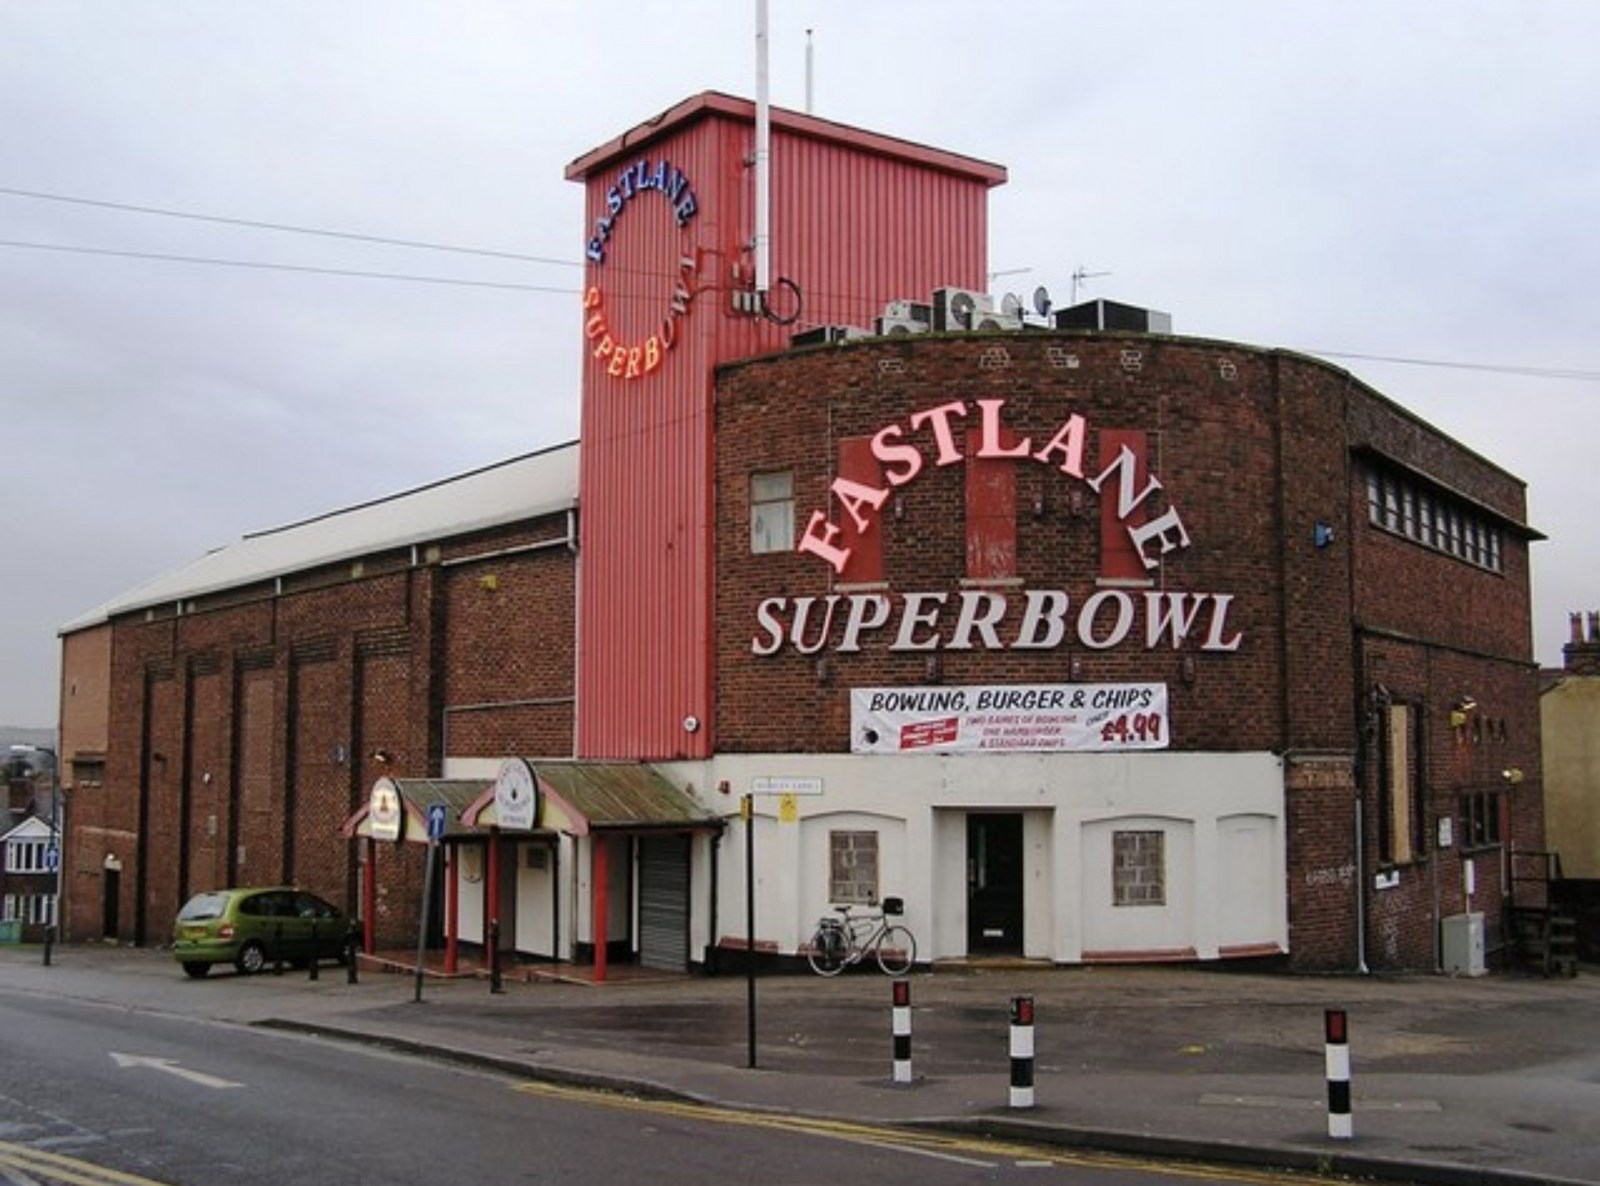 Fastlane Superbowl Sheffield.jpg